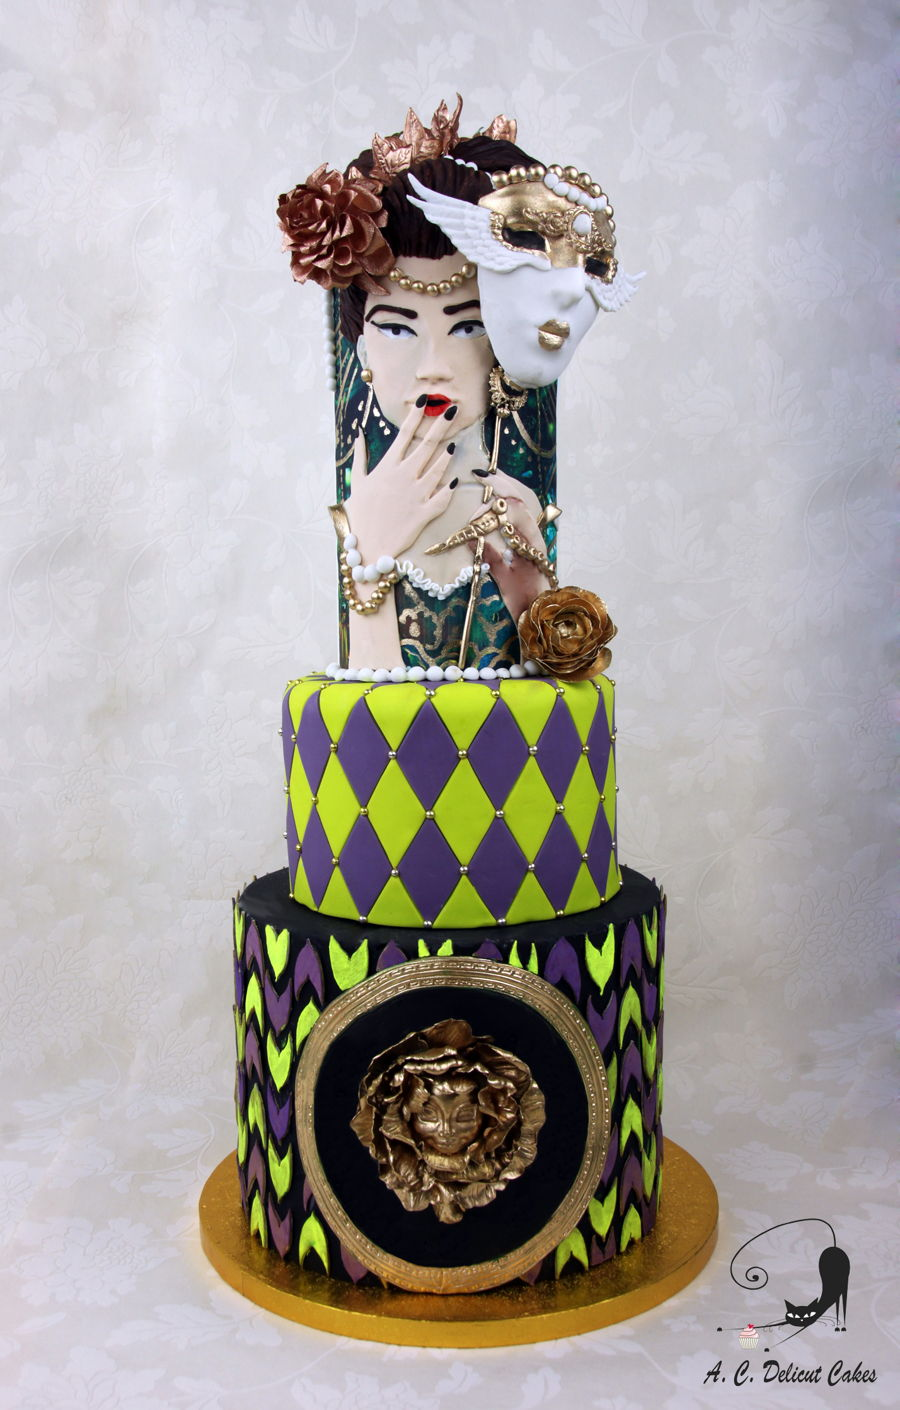 The Woman Behind The Mask on Cake Central